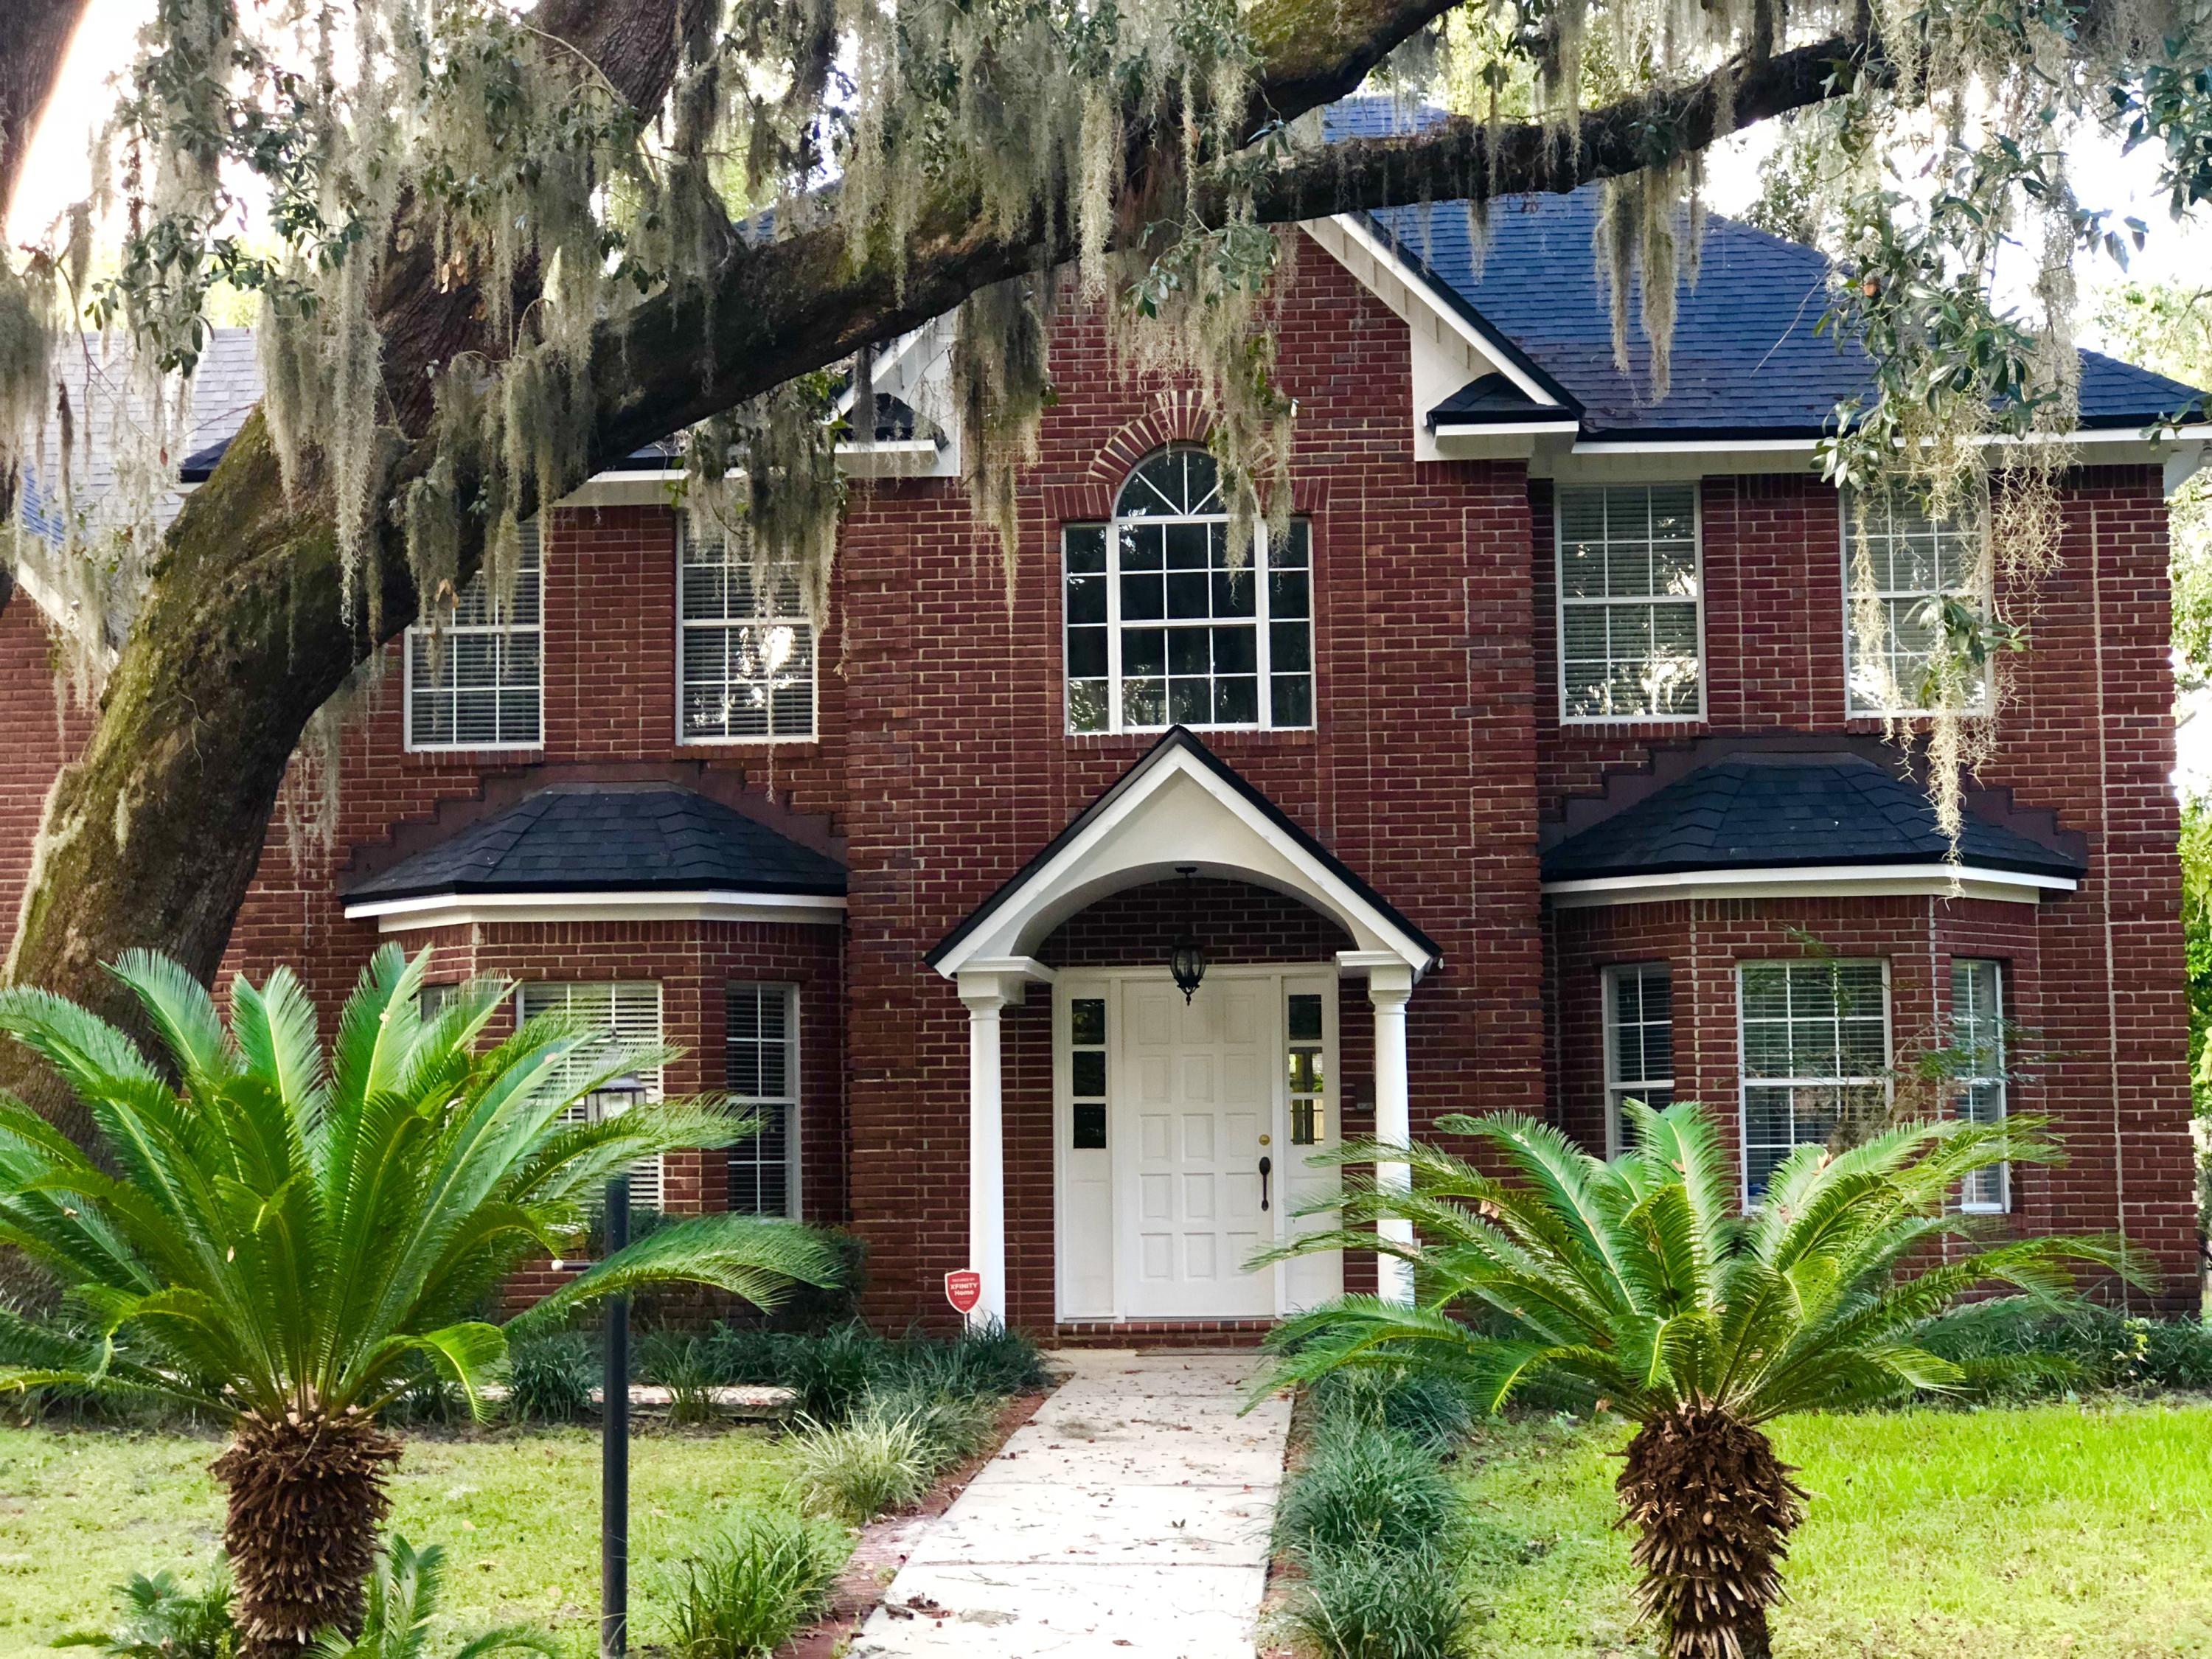 4443 BASS, JACKSONVILLE, FLORIDA 32210, 5 Bedrooms Bedrooms, ,3 BathroomsBathrooms,Residential - single family,For sale,BASS,962777